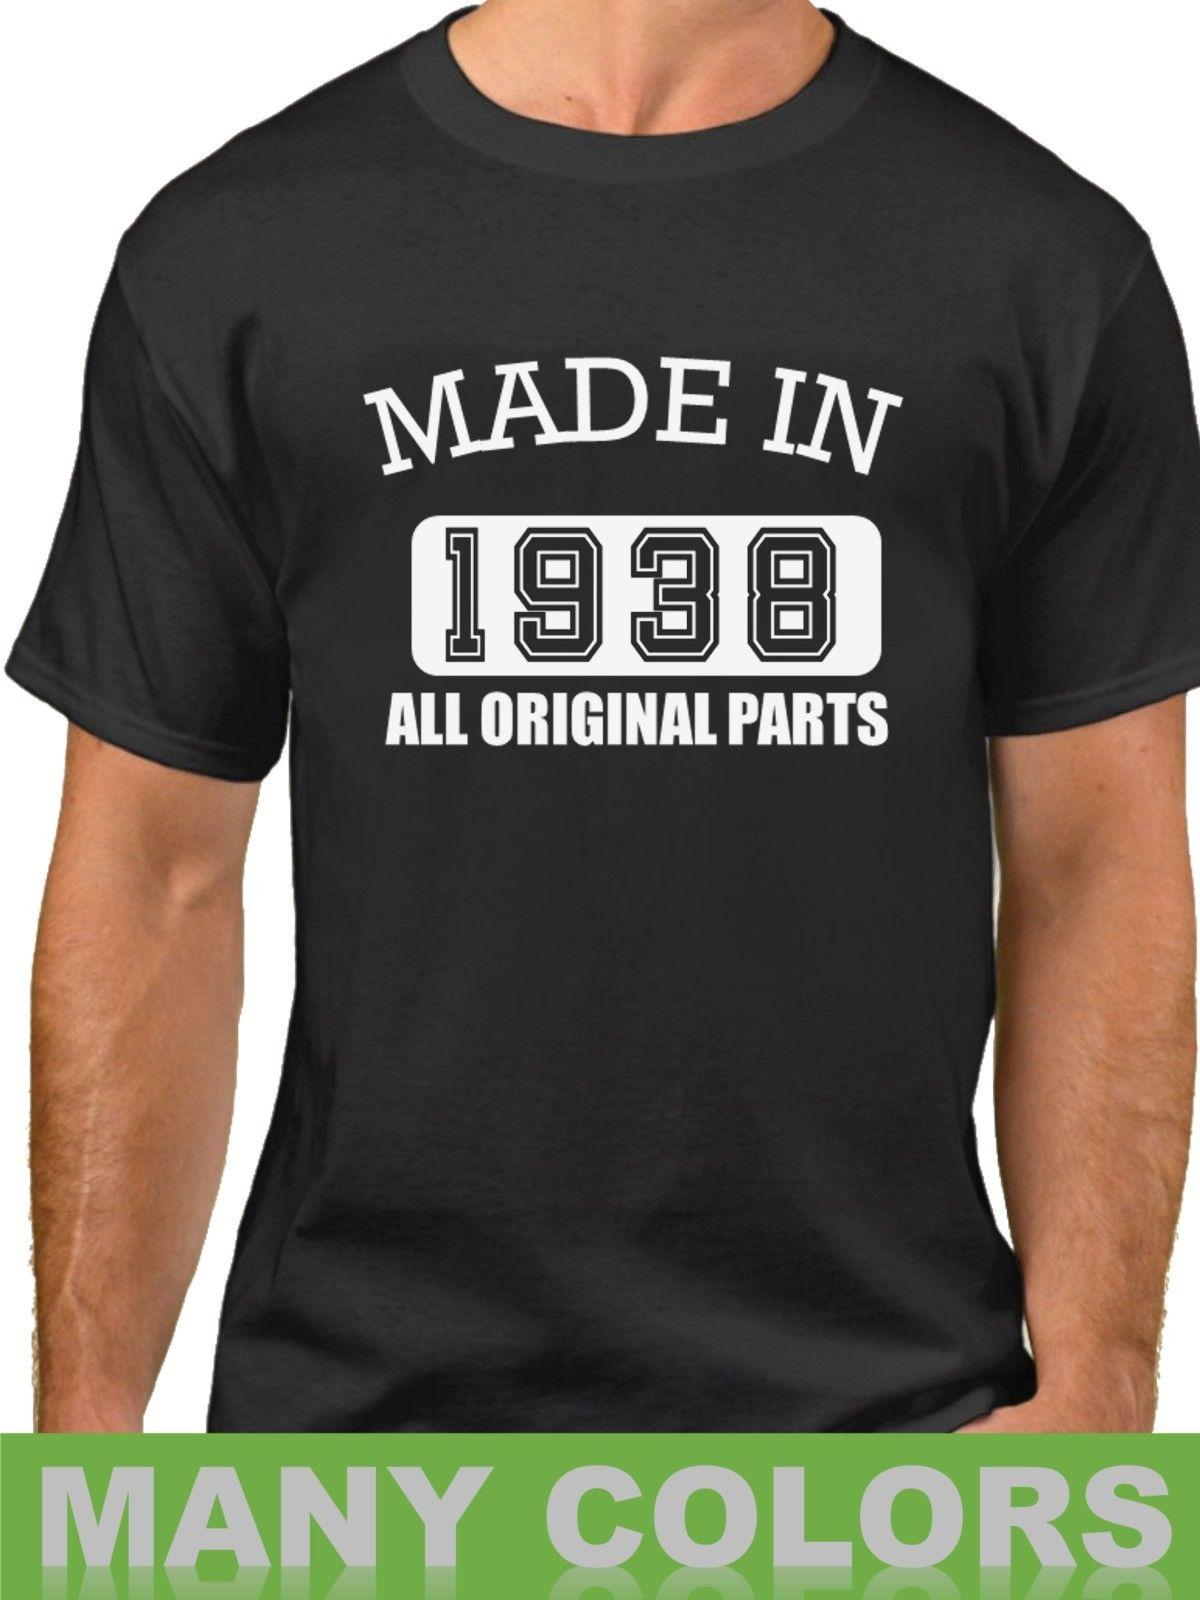 Made In 1938 All Original Parts T Shirt 80 Years Of Being 80th Birthday ShirtFunny Unisex Casual Tee Gift Buy Online Crazy Shirts From